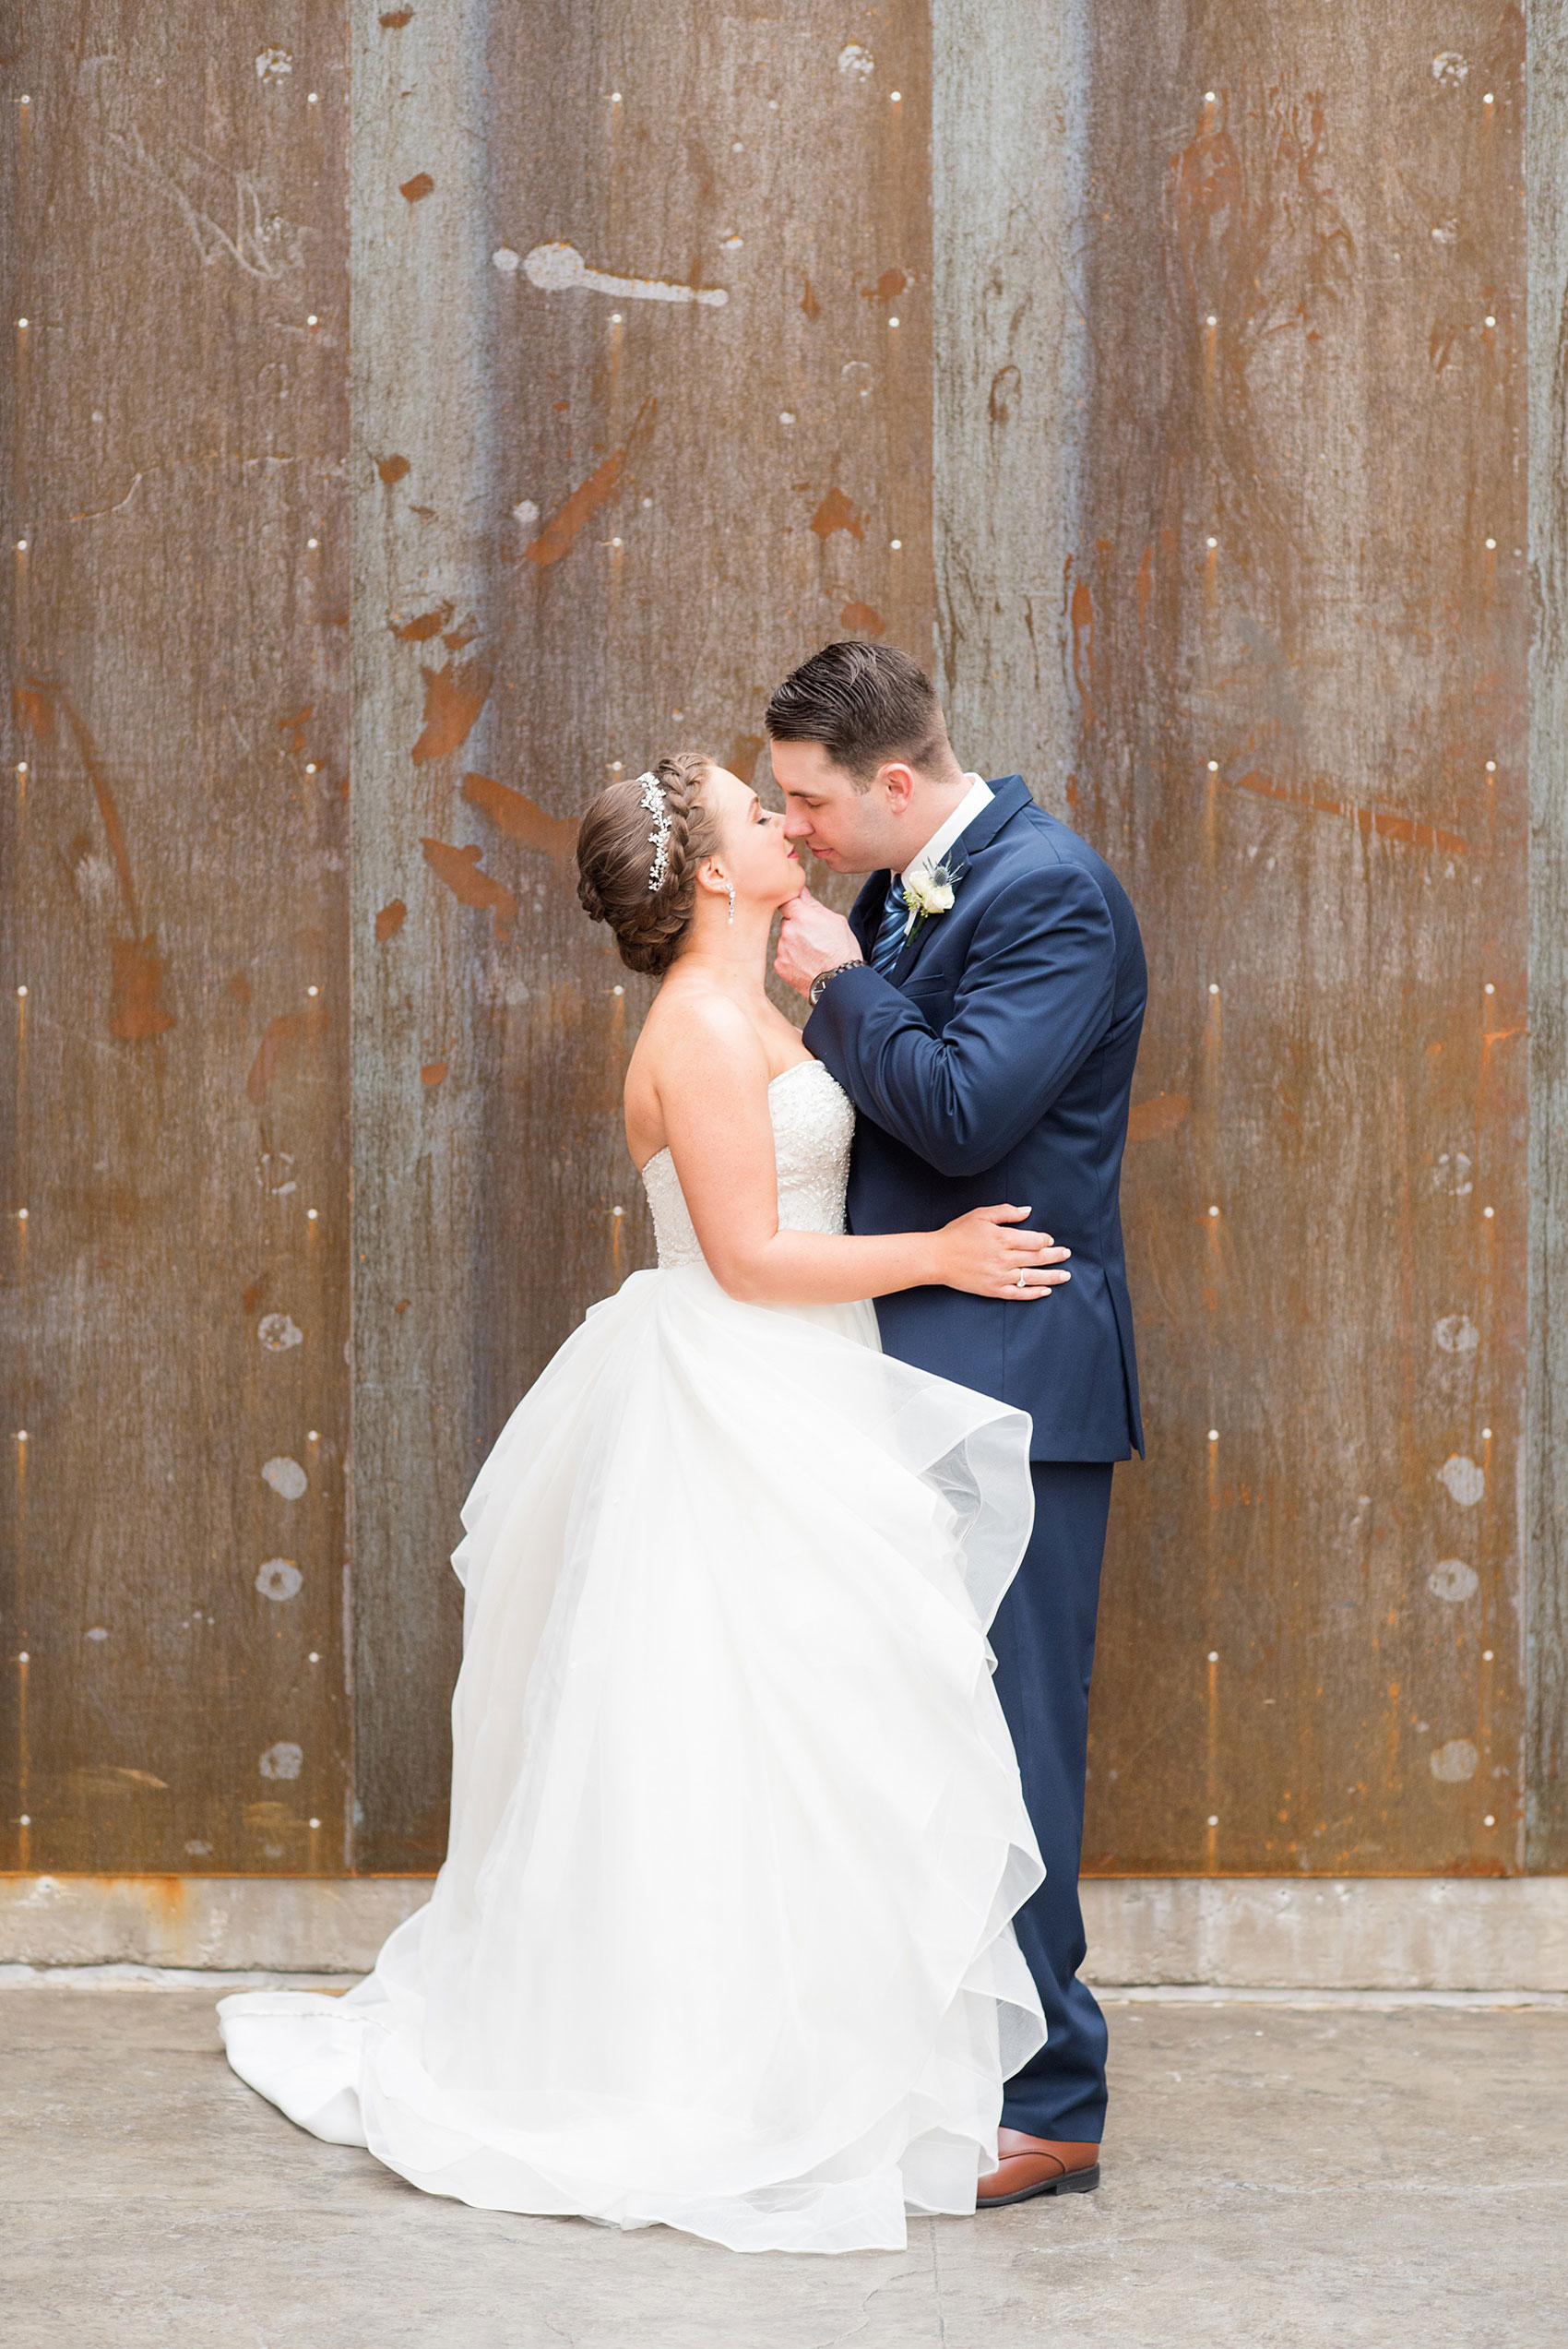 Durham wedding photos at The Cookery by Mikkel Paige Photography in North Carolina. The bride wore a strapless beaded gown with many layers in the skirt and groom wore a navy blue suit at their rustic winter day.